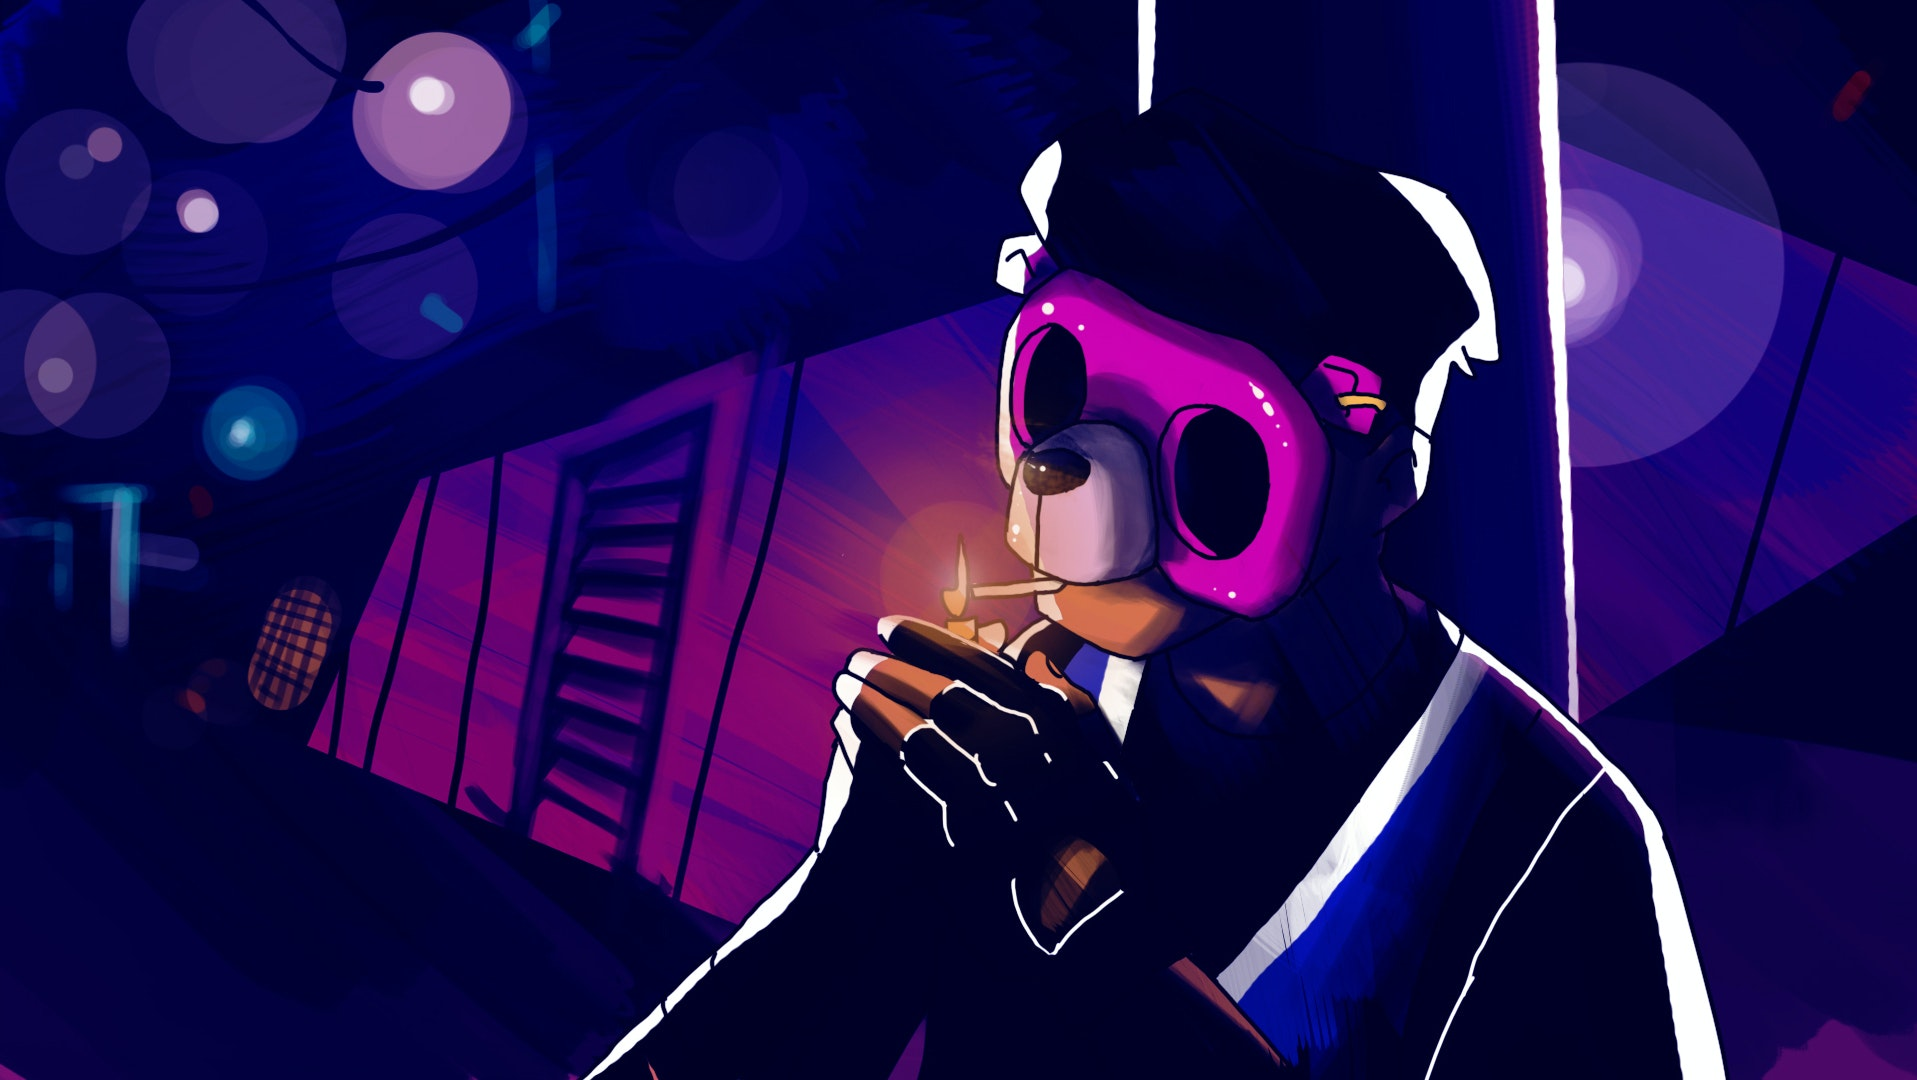 Concept illustration of a character with a mask smoking a cigarette